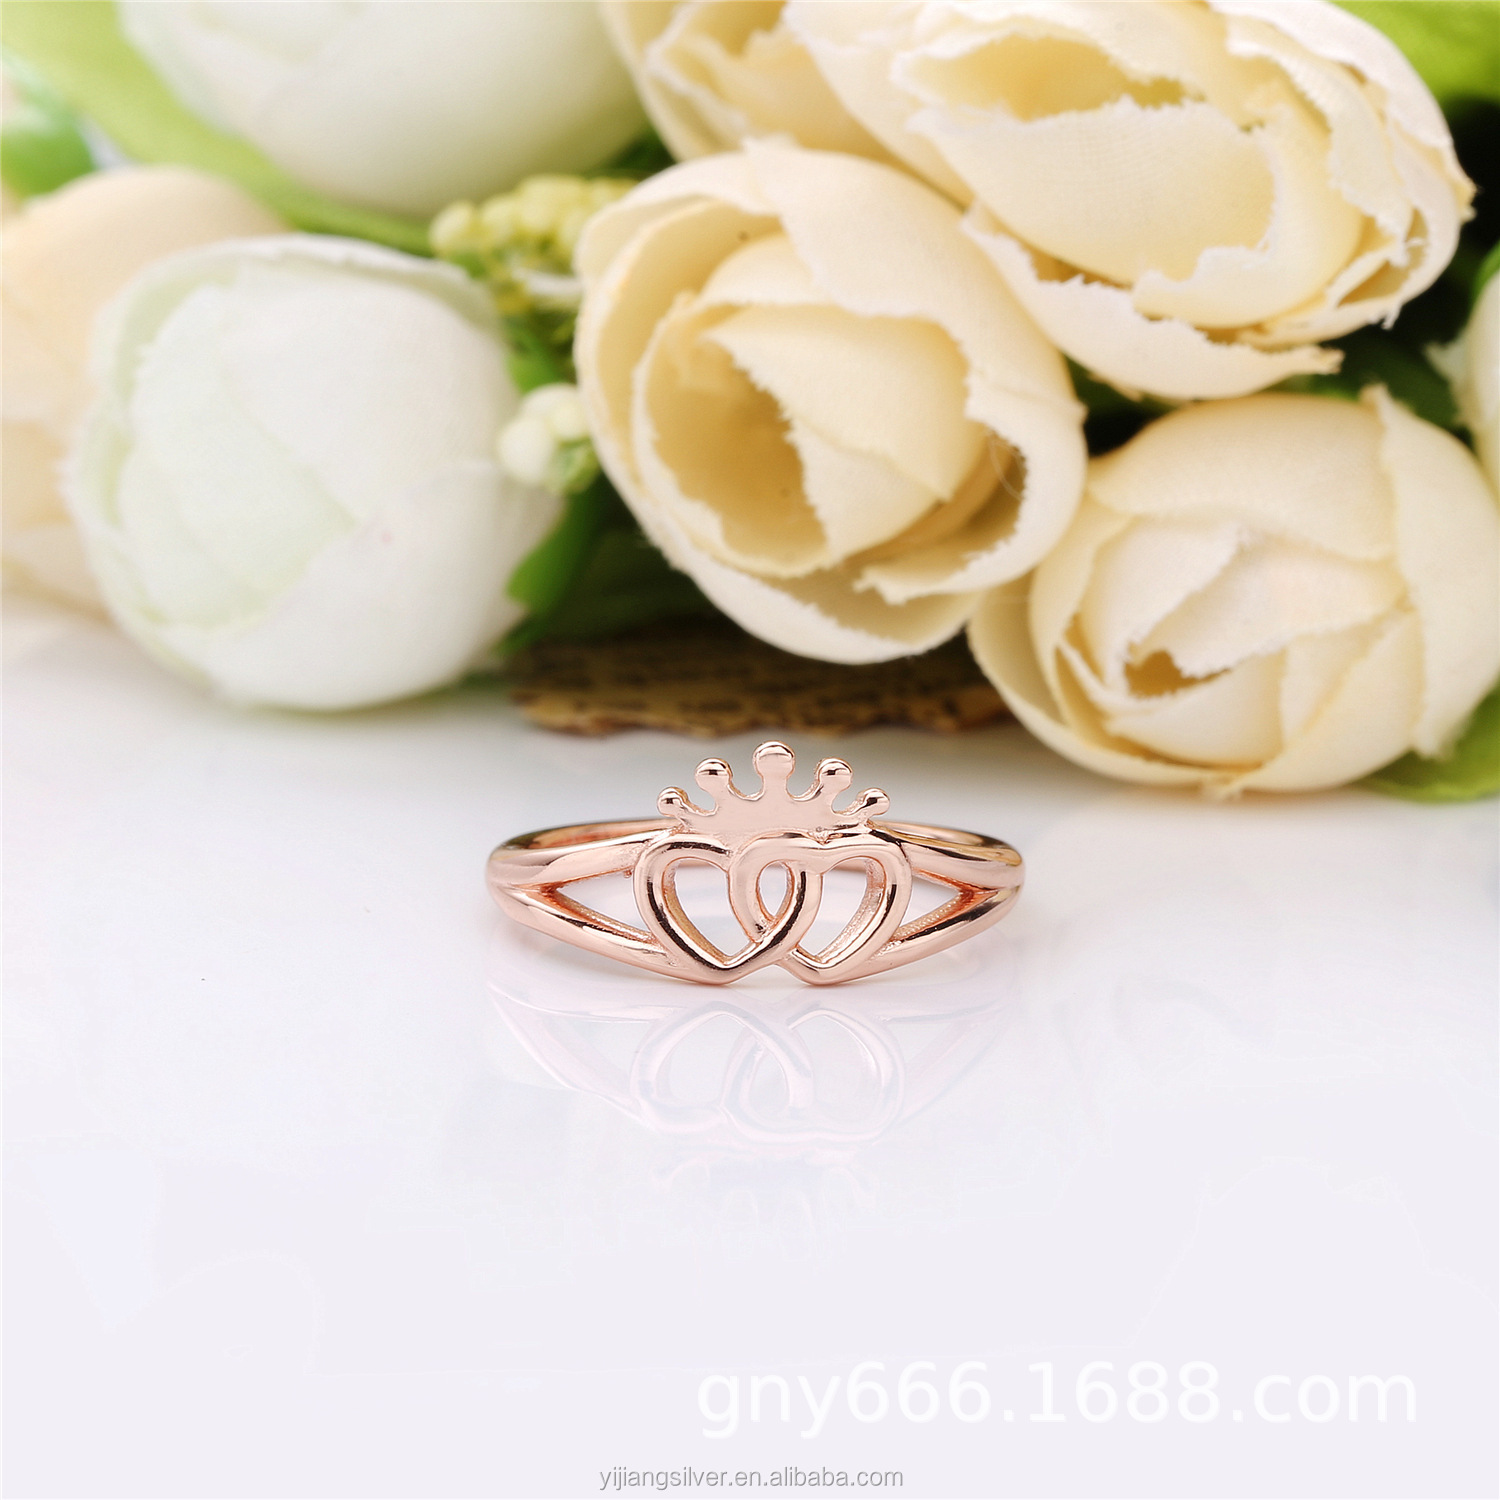 S925 Sterling Silver Ring 2018 New Rose Gold Crown Ring